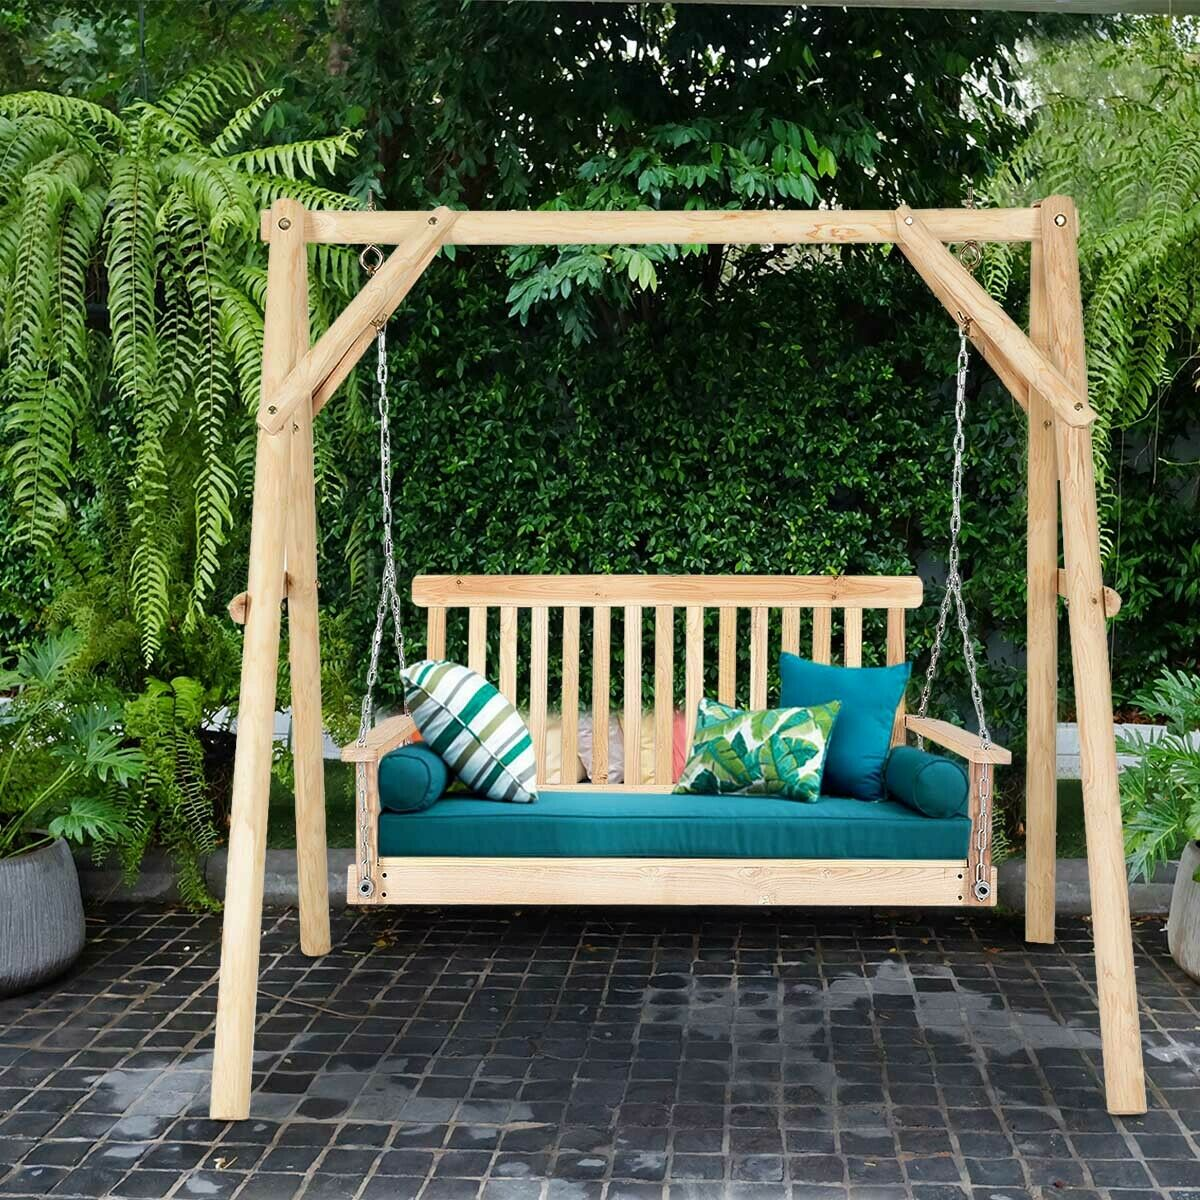 Seat Porch Garden Swing Natural Wood